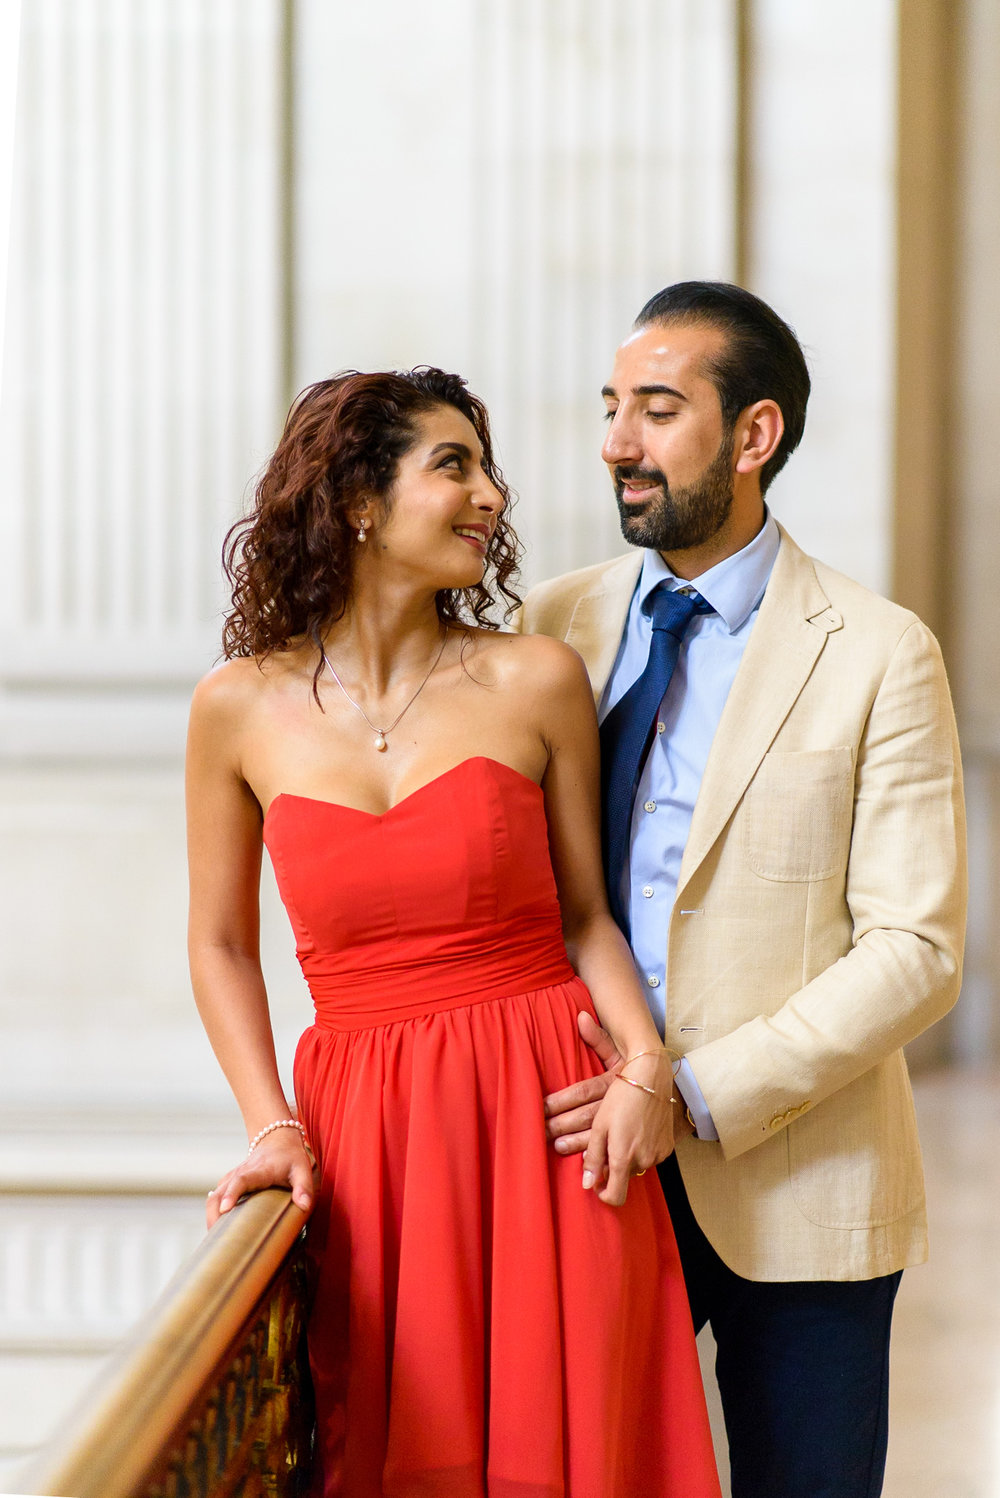 San Francisco City Hall Engagement Photo Session-3.jpg